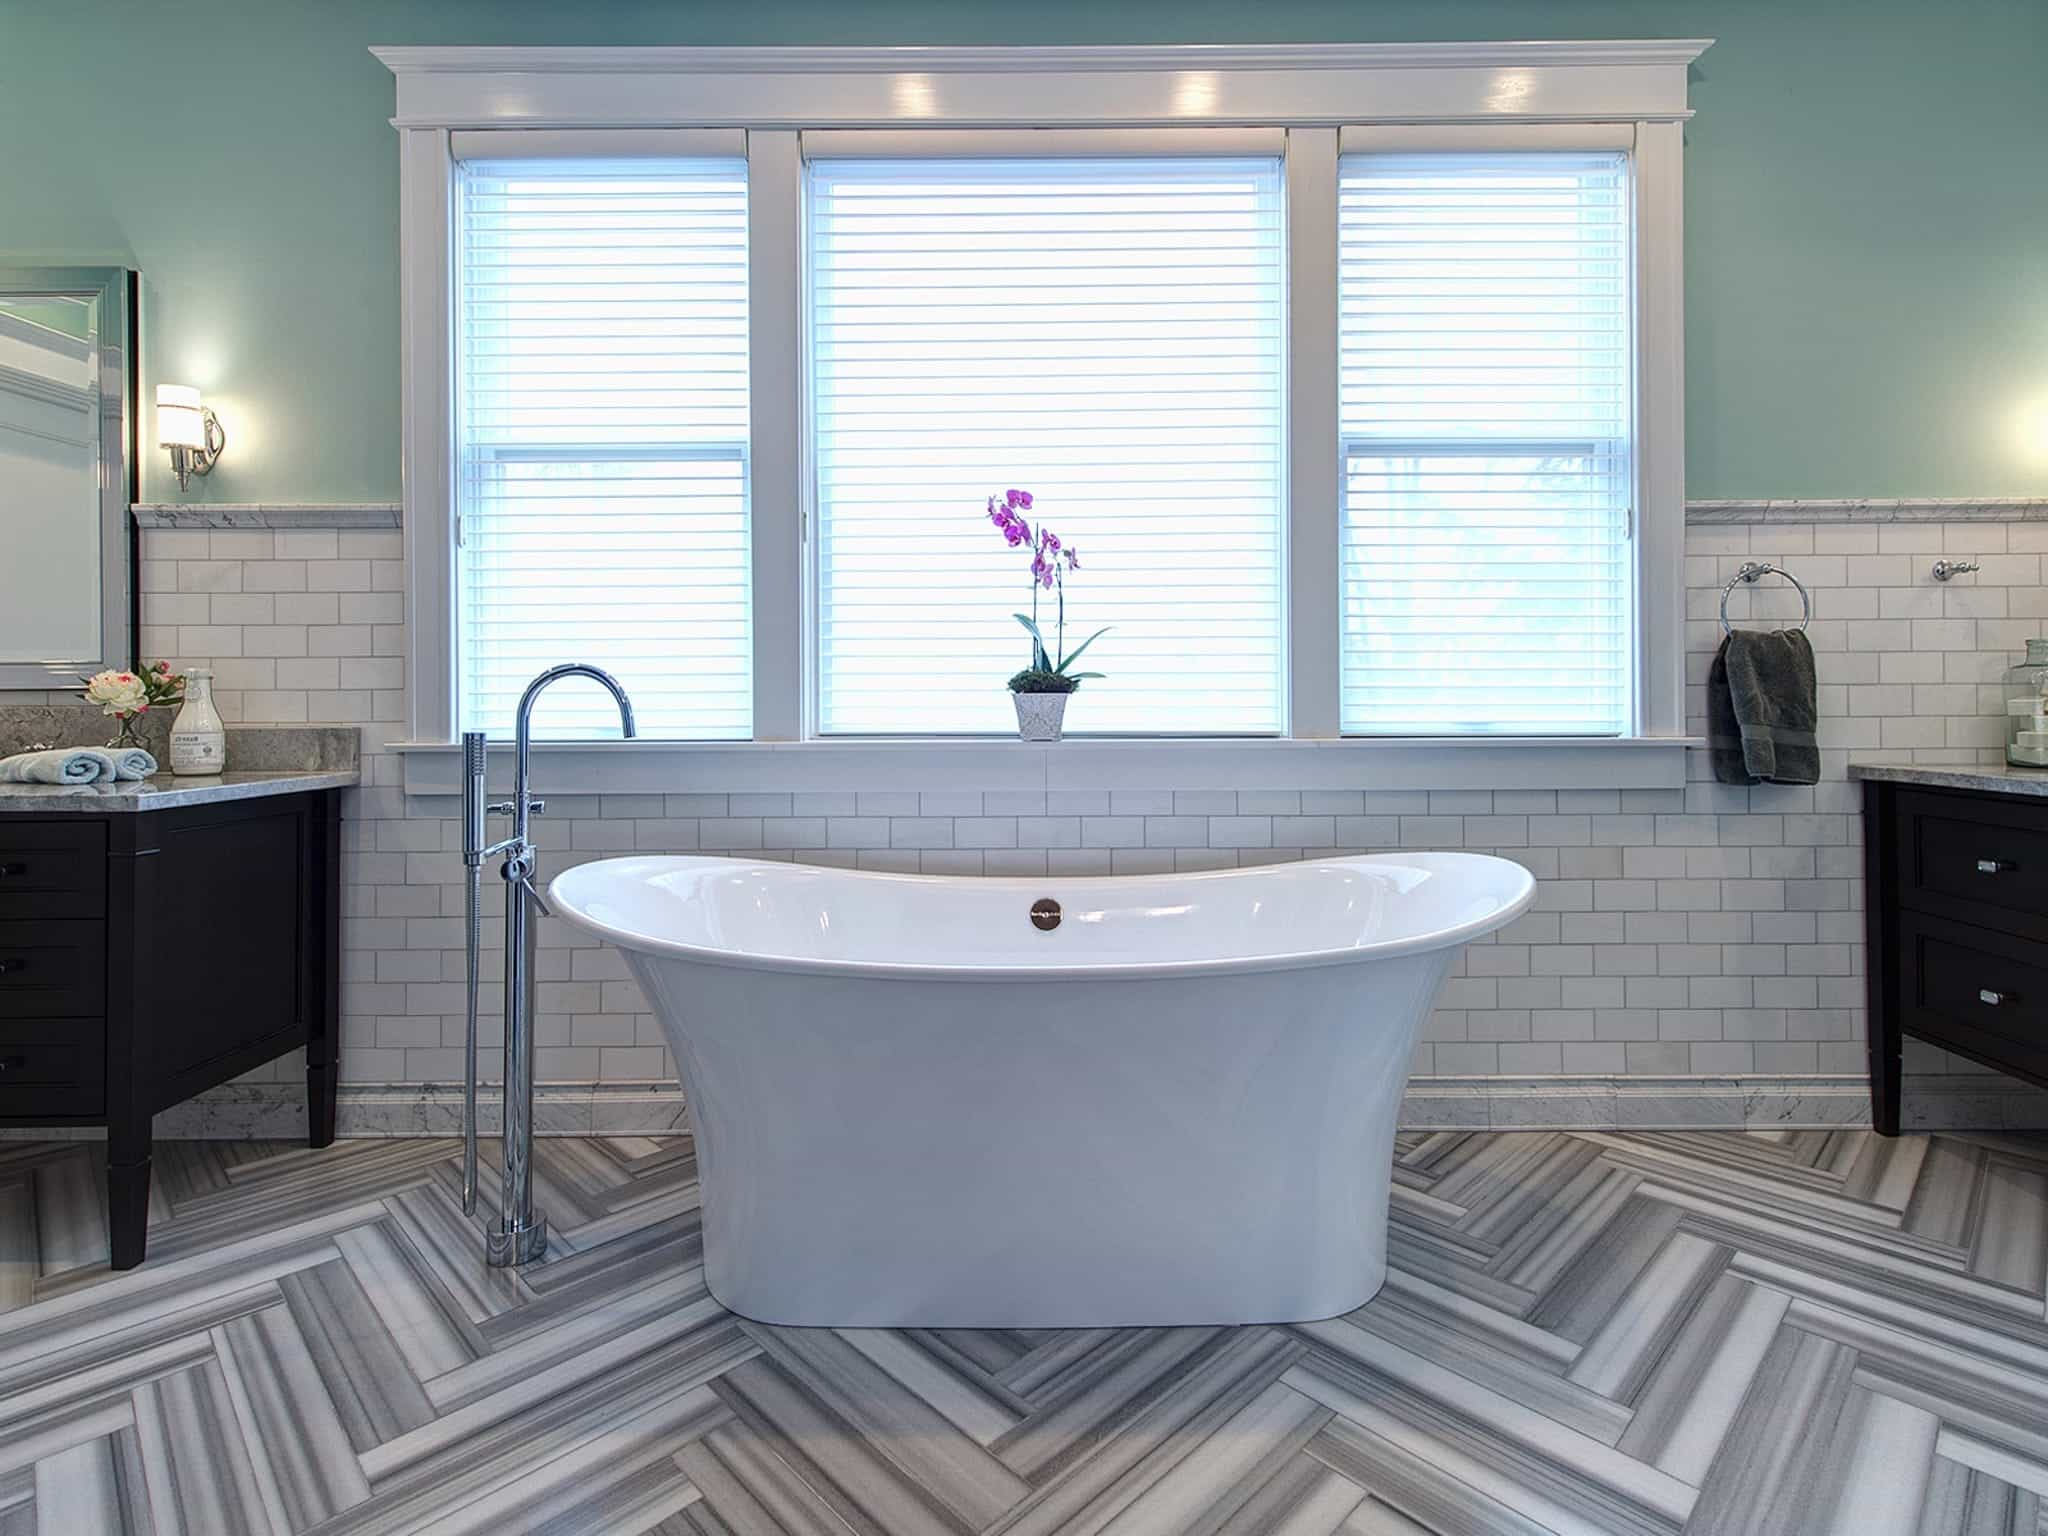 Bathroom Floor Remodel For Contemporary Blue Bathroom With Herringbone Floor (Image 3 of 19)